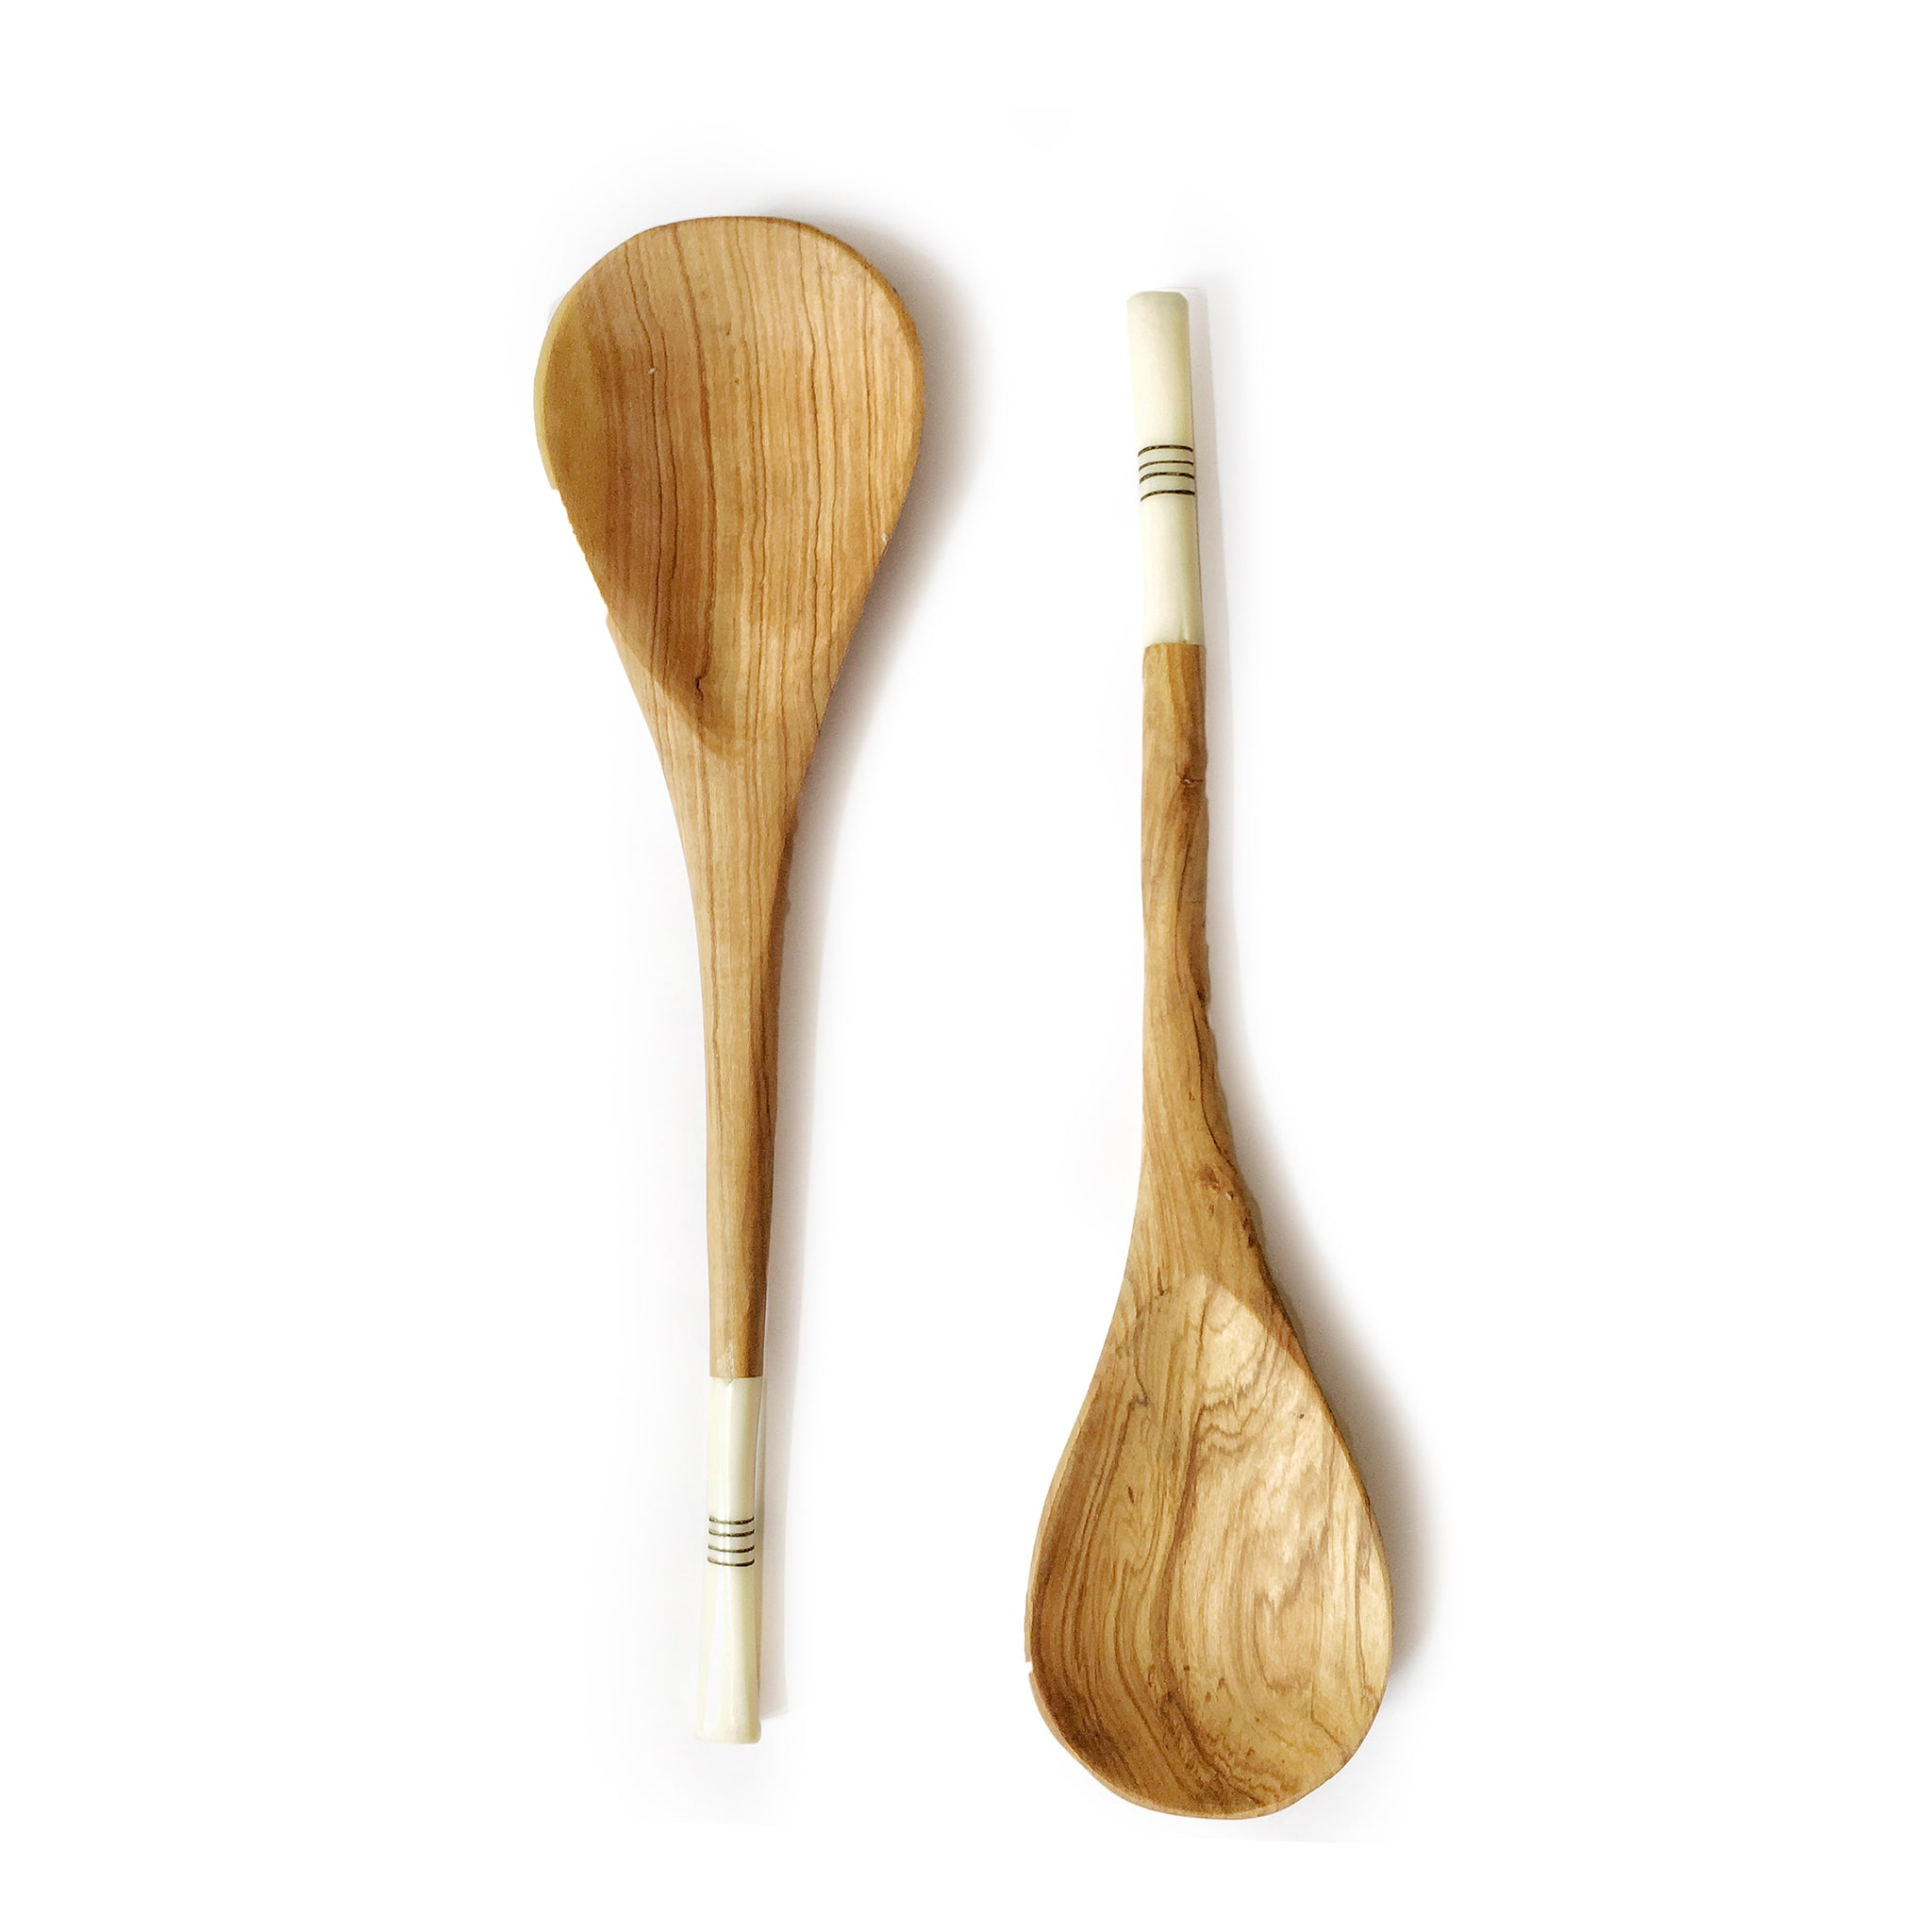 Olive Wood Salad Servers With Bone Inlay Black White Ashepa Lifestyle